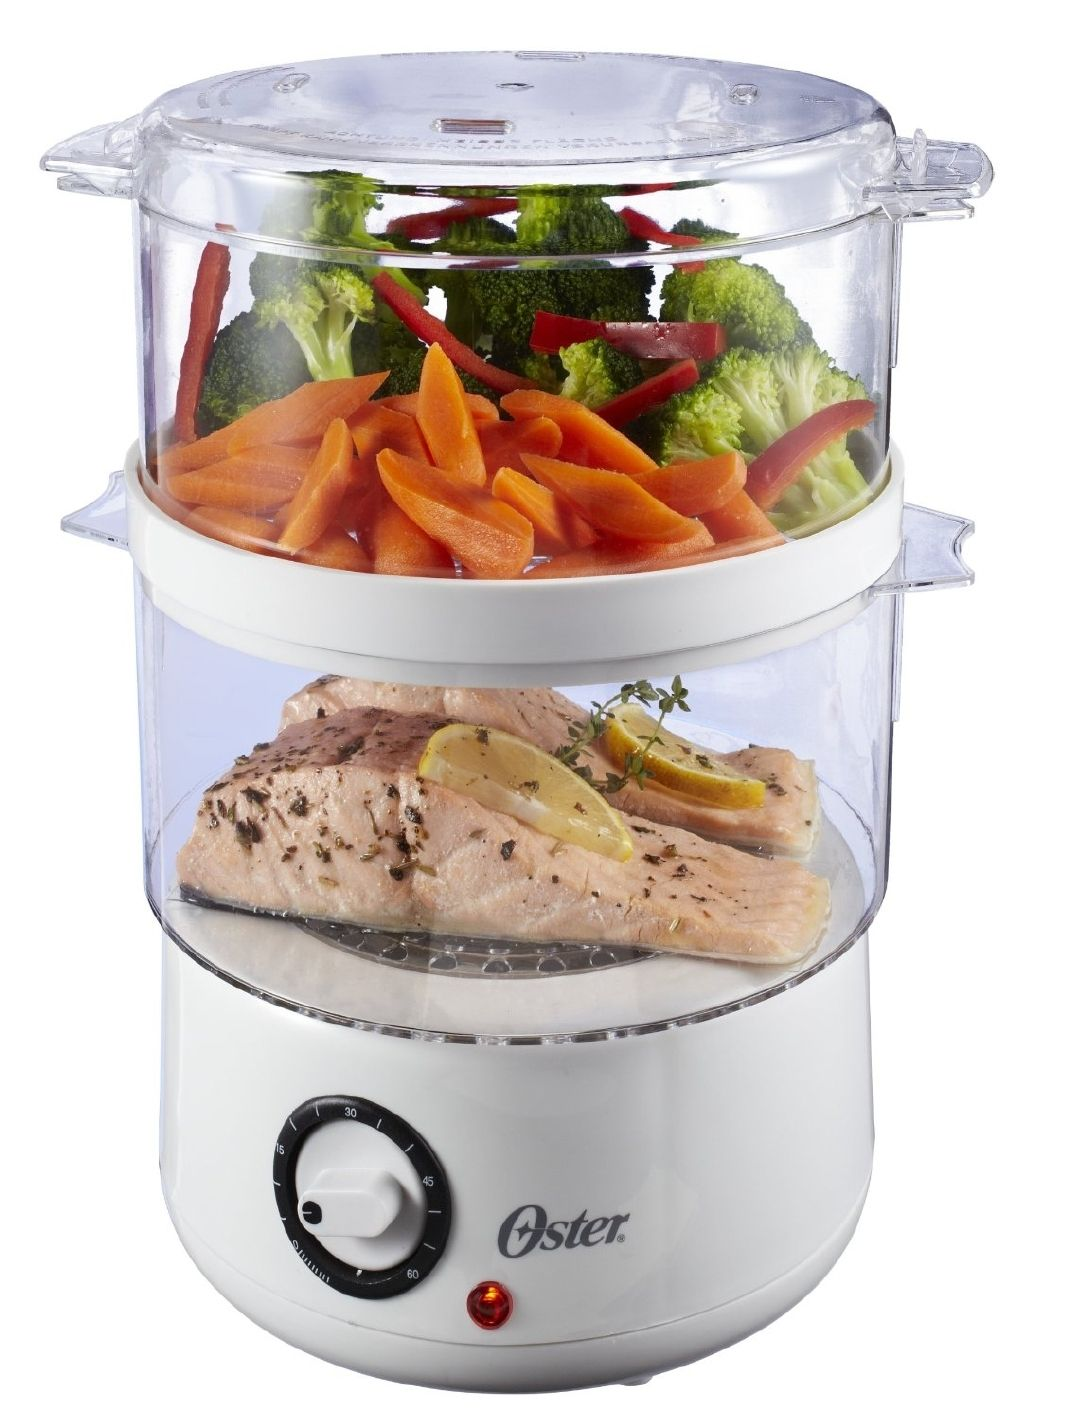 Food Steamer Cooker Vegetables Best Steamers Electric Cookers Kitchen Small Veg Veggies Steamer Recipes Food